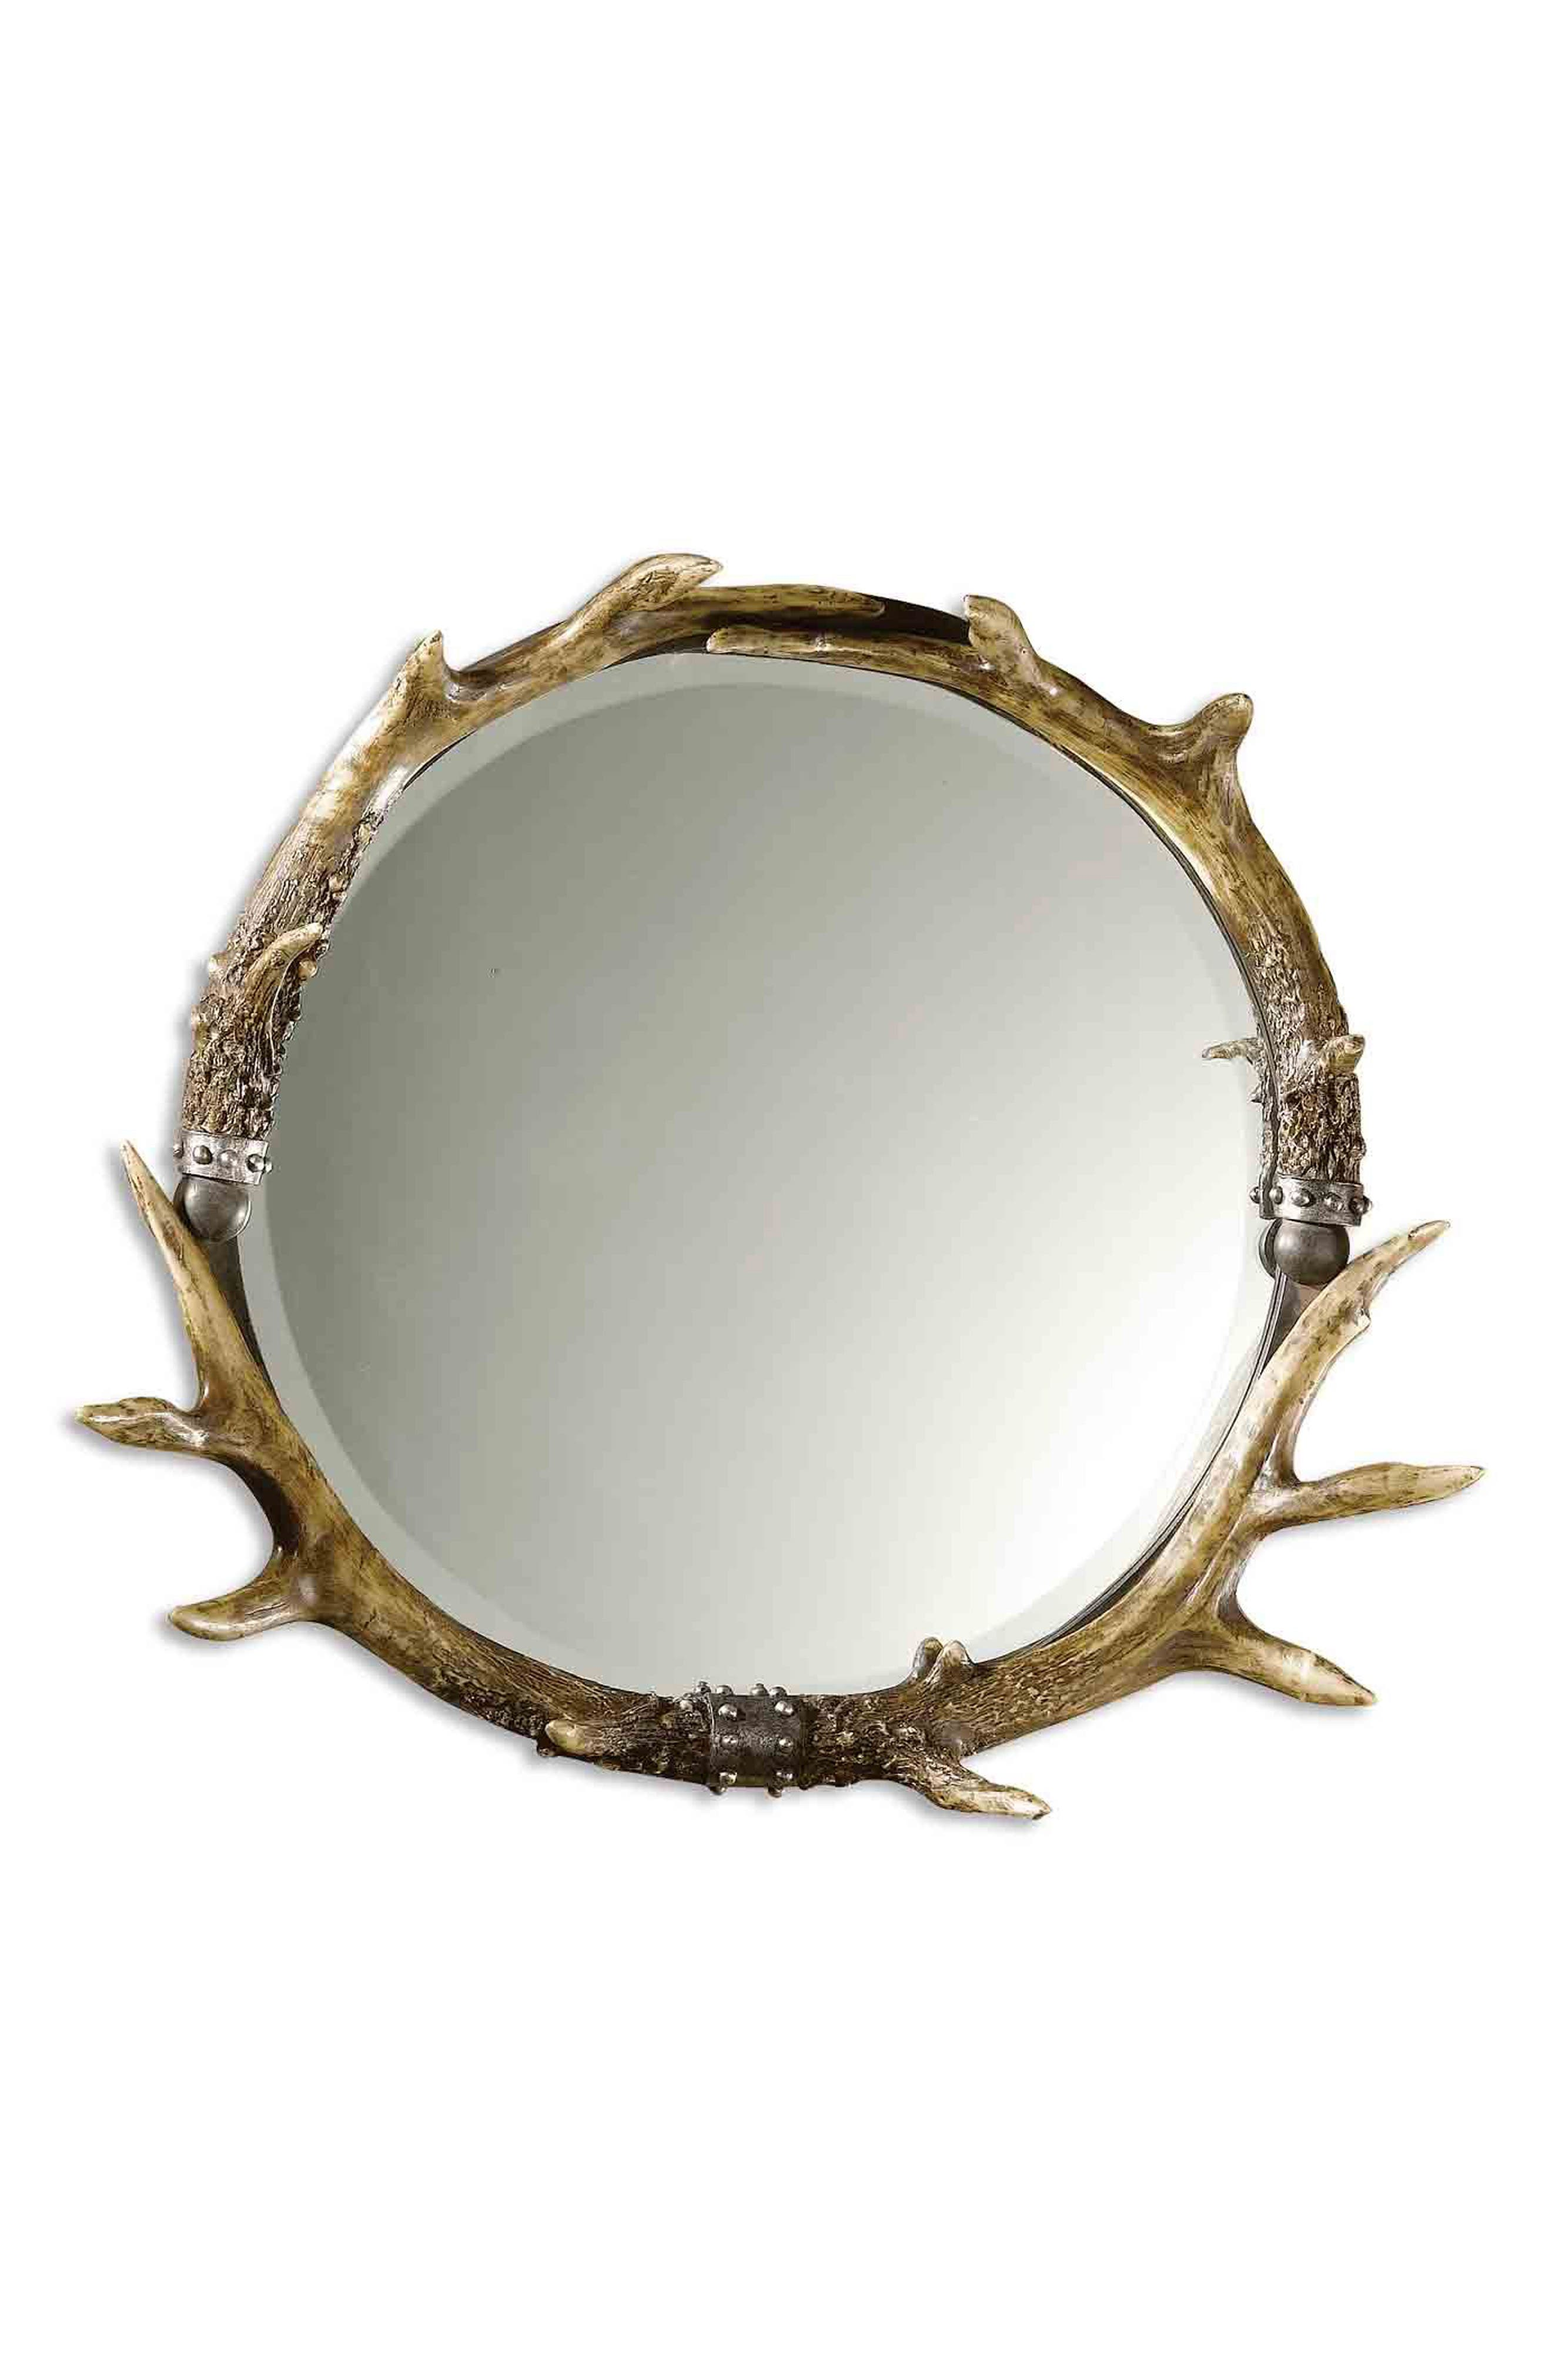 Alternate Image 1 Selected - Uttermost Stag Horn Wall Mirror